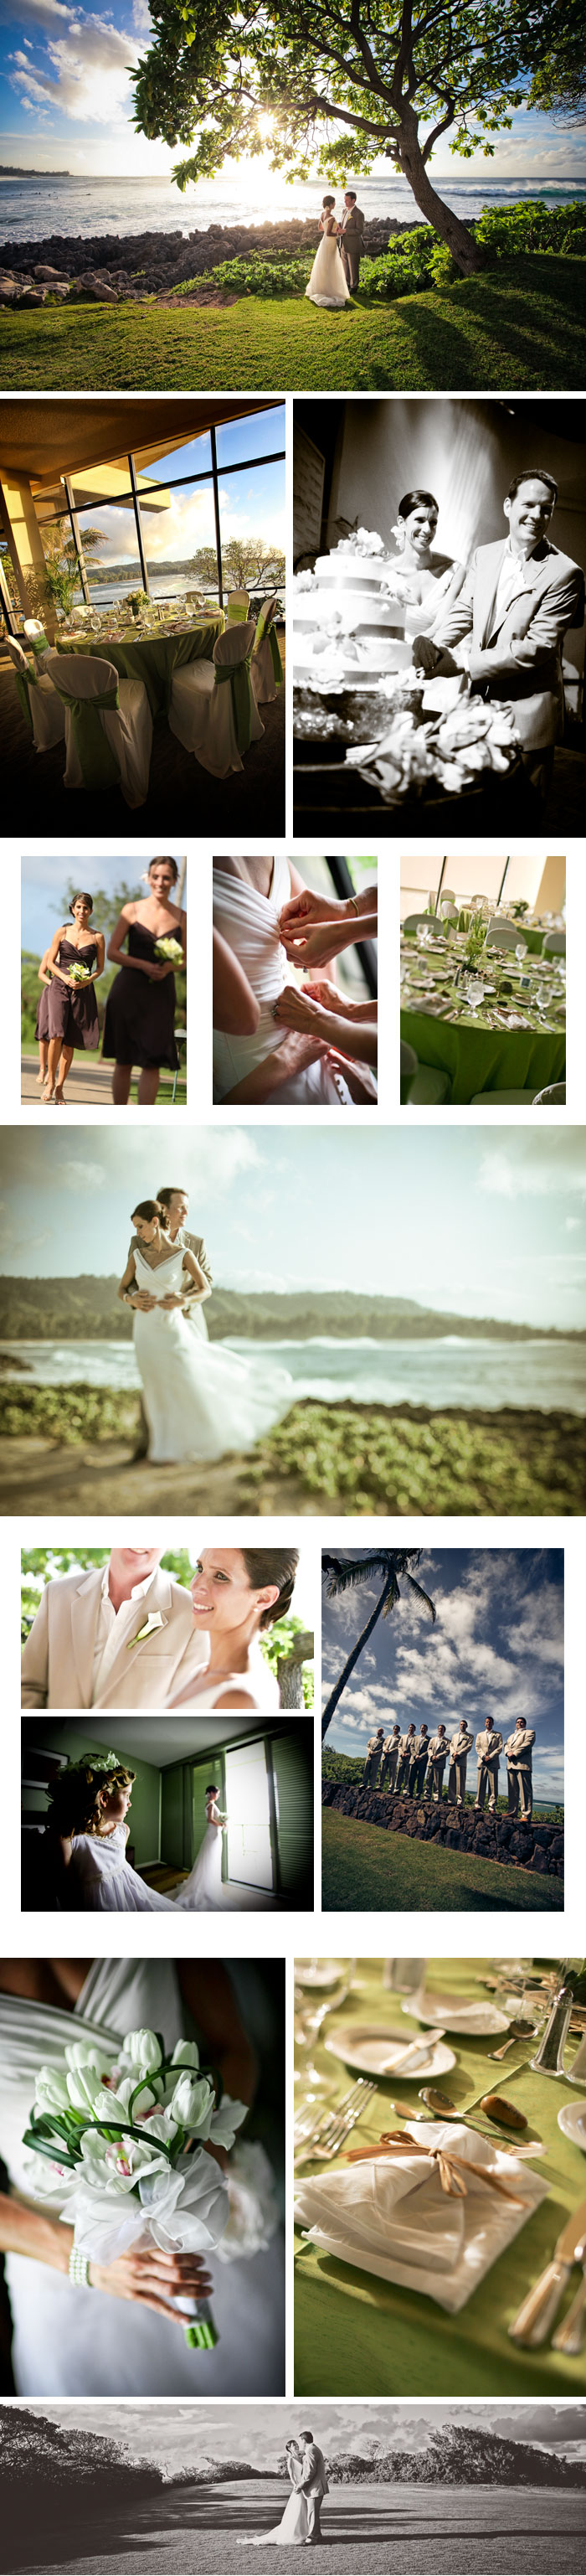 Shawn Starr : Modern Wedding Photography : Pittsburgh Wedding Photographer : Turtle Bay Resort